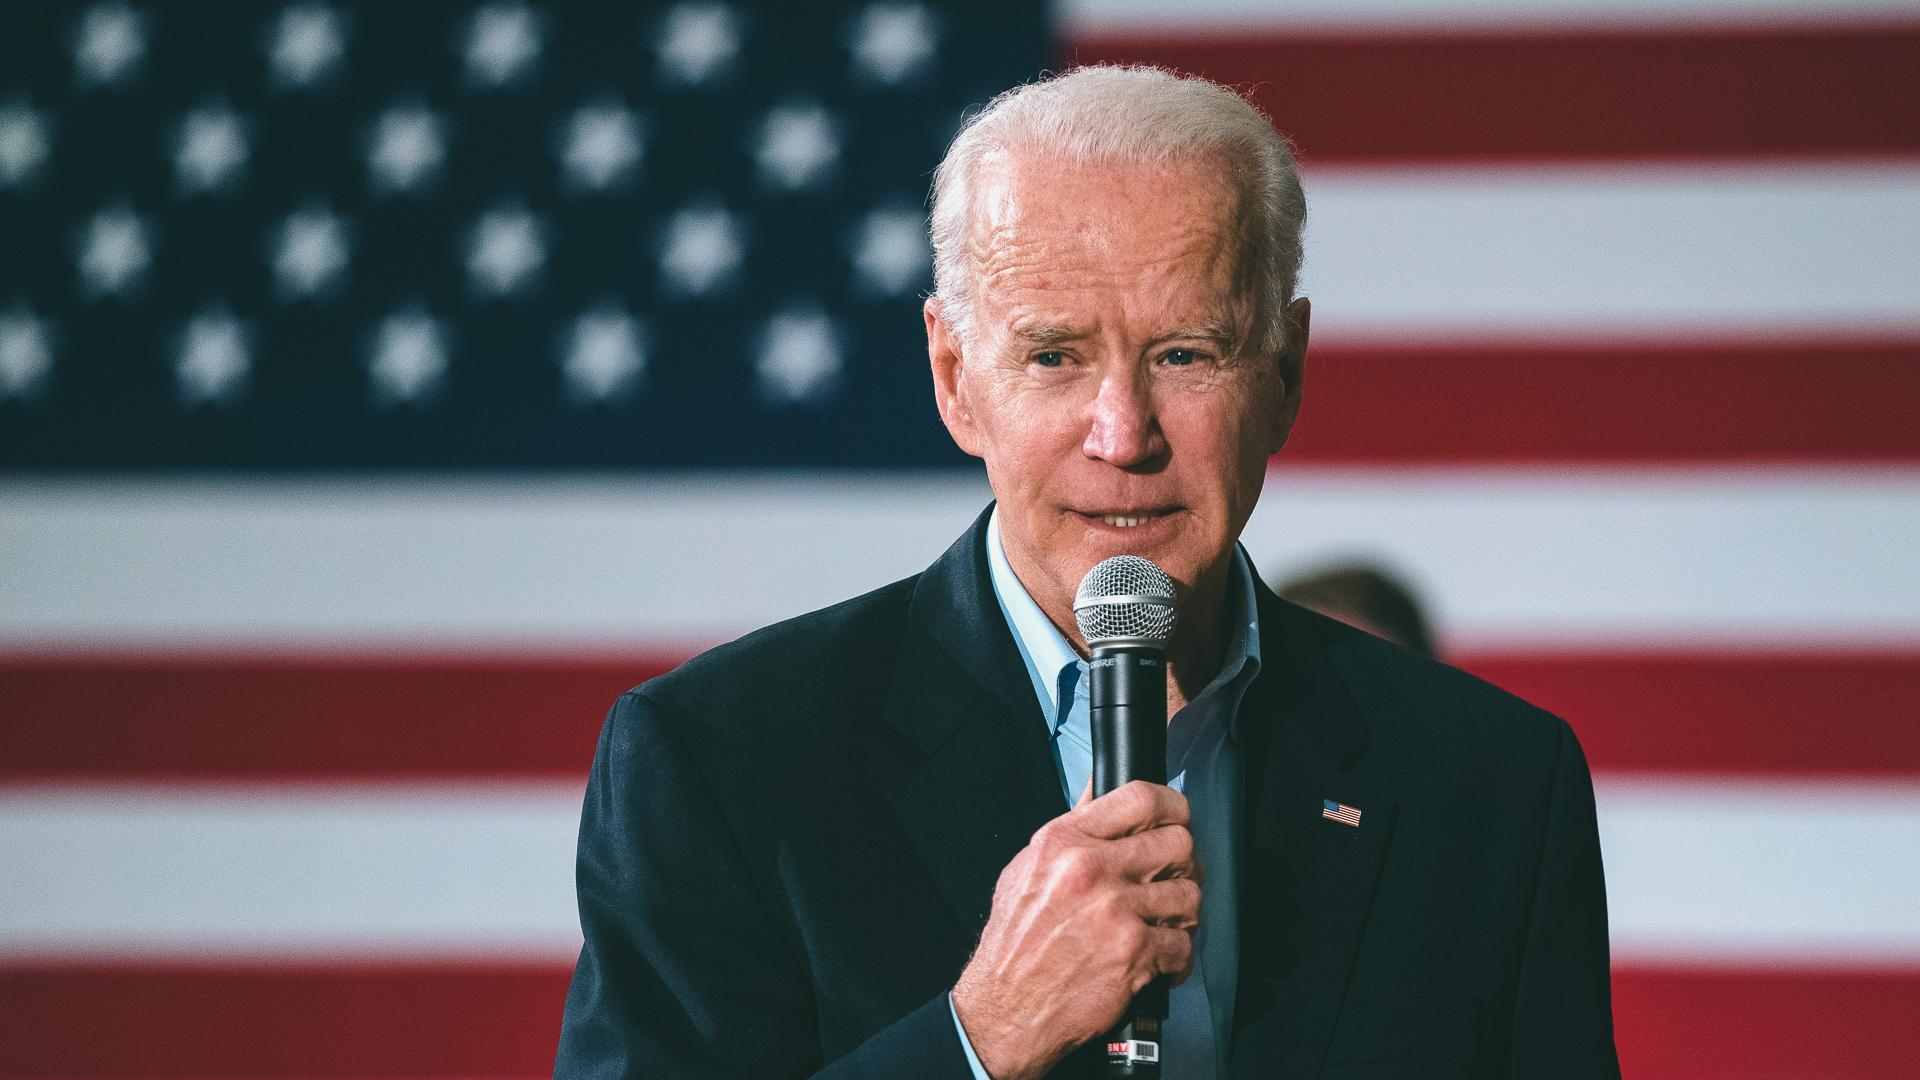 Democratic candidate and former Vice President Joe Biden speaks during a campaign event at the Iowa Memorial Union in Iowa City, Iowa, USA, 27 January 2020.